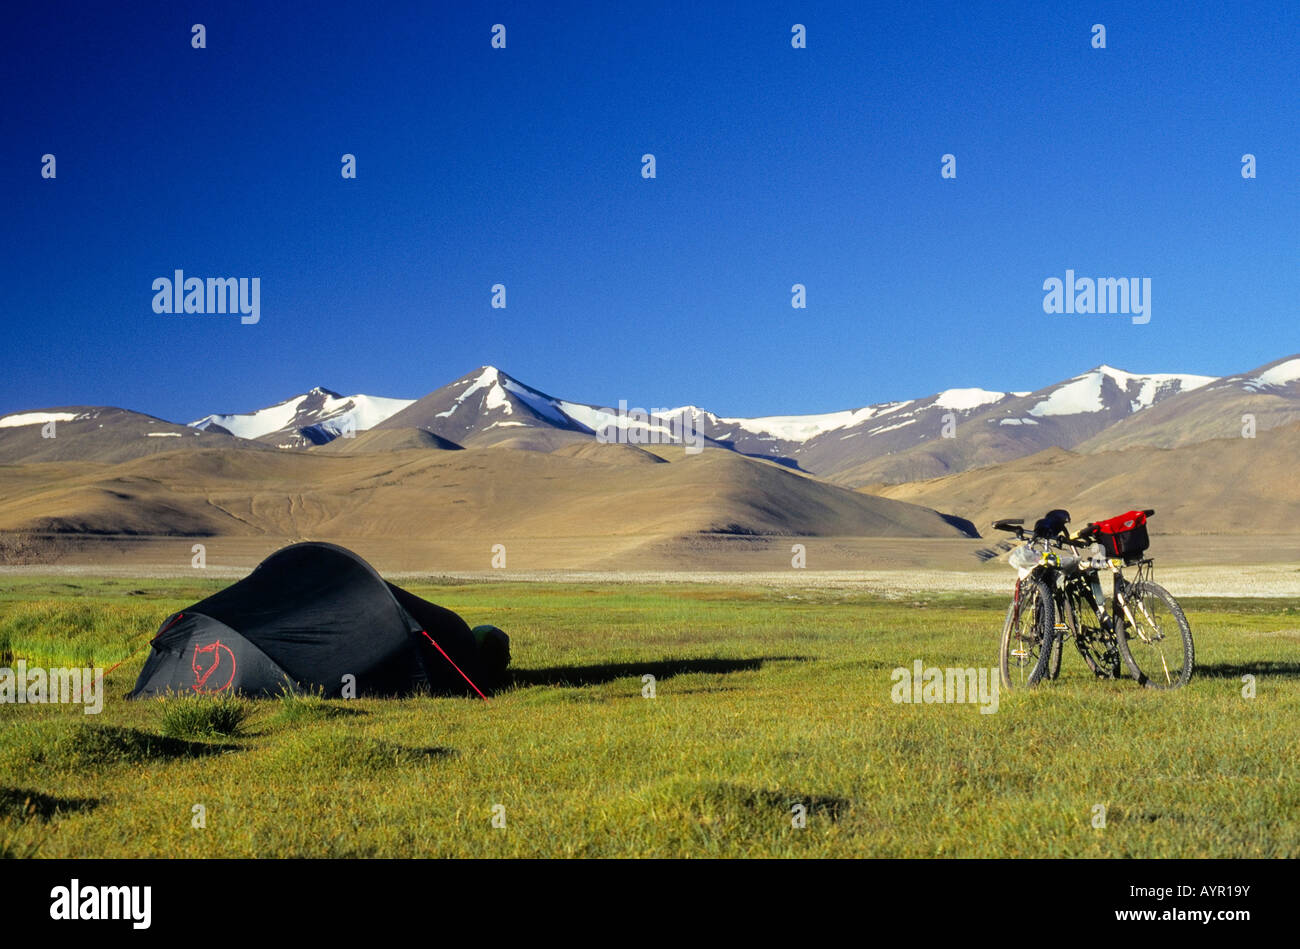 Two mountain bikes beside a tent, grass-covered plateau and snow-covered peaks, elevation over 4900 metres, Himalayas, - Stock Image